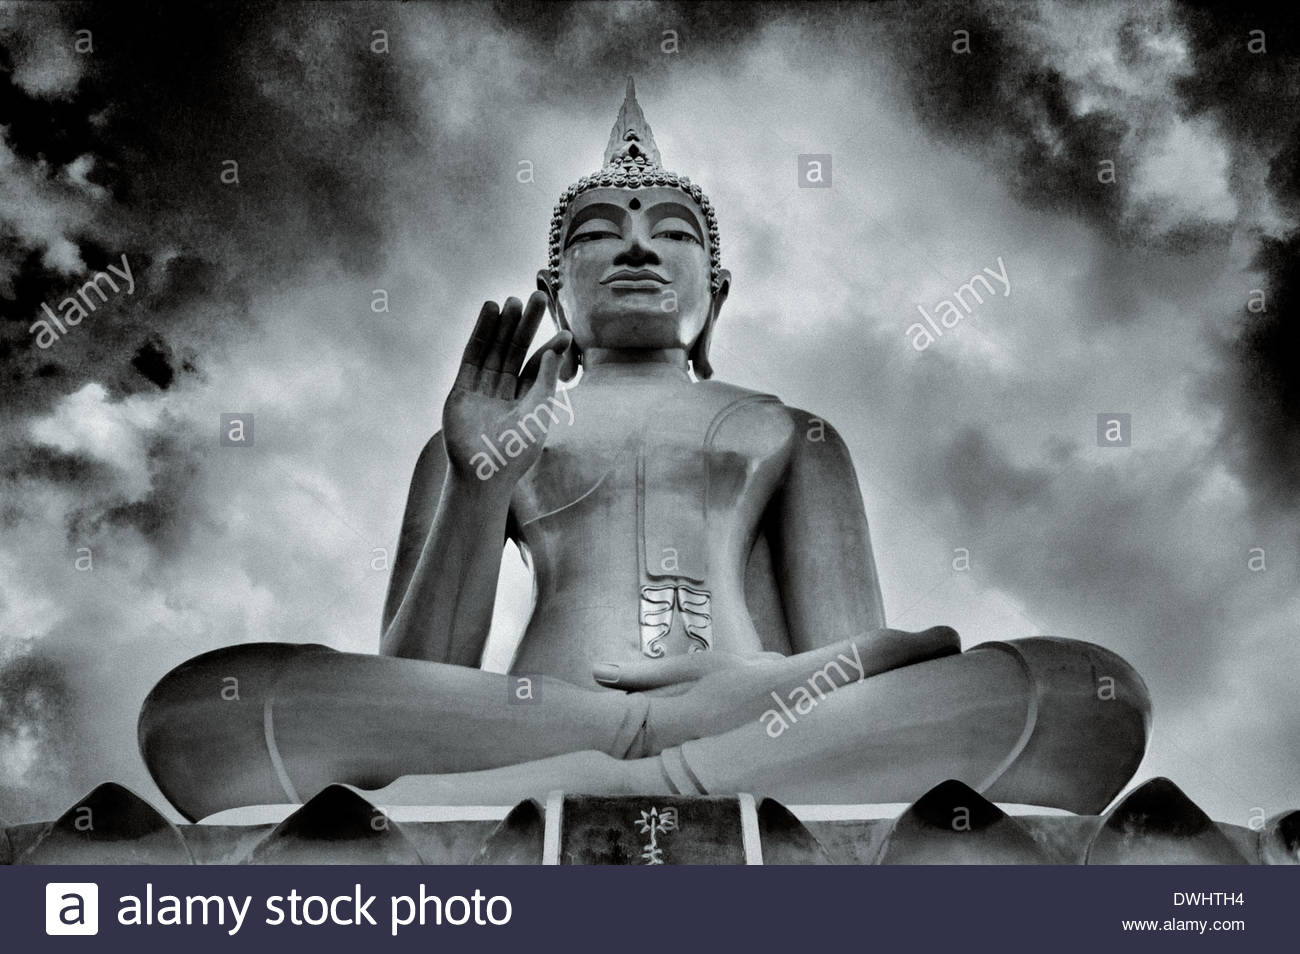 Buddhist statue, Chaiyaphum Province, North East Thailand, South East Asia. - Stock Image